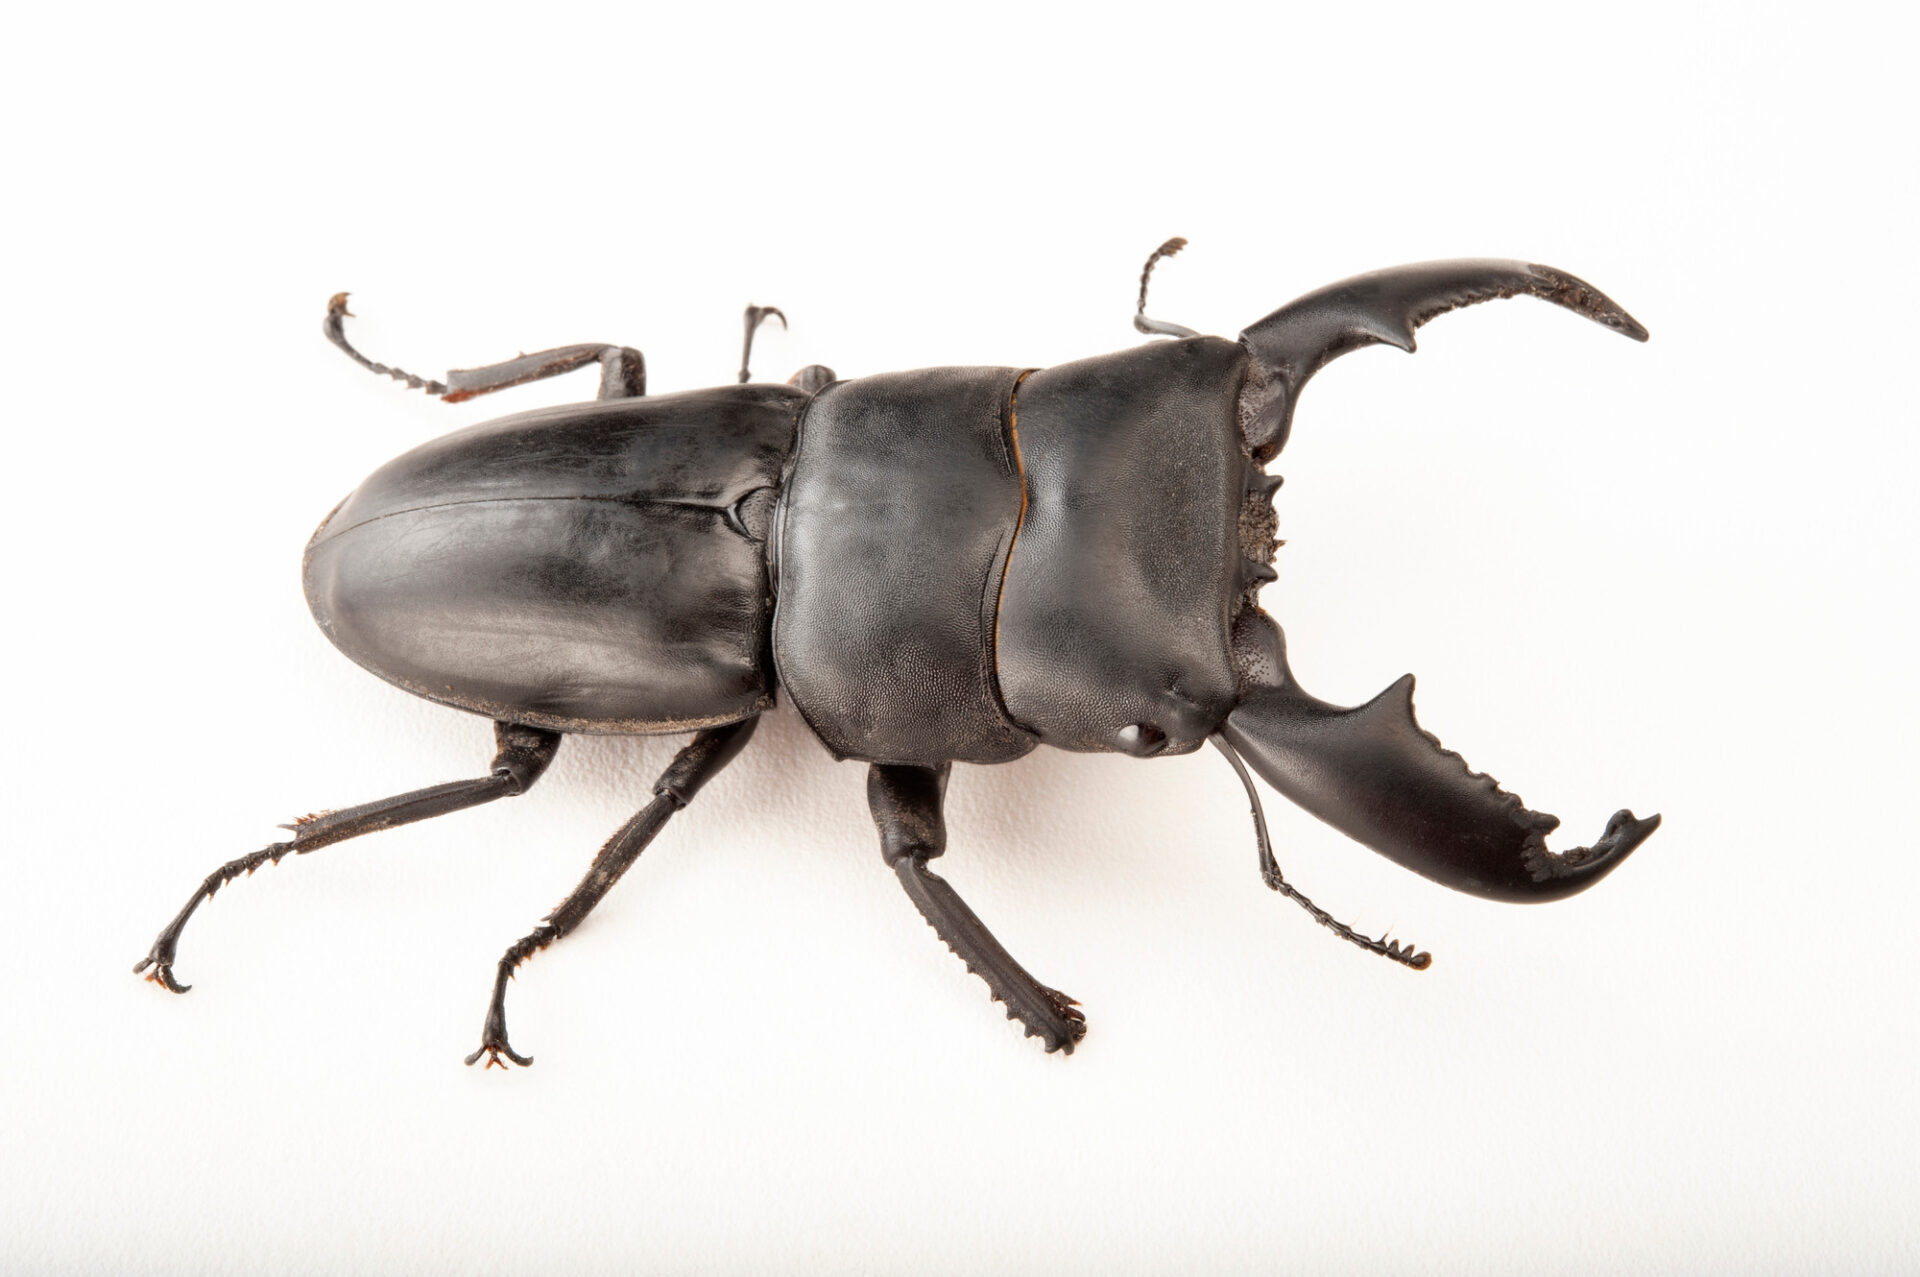 Photo: Black stag beetle (Dorcus titanus) at the Insectarium in New Orleans.